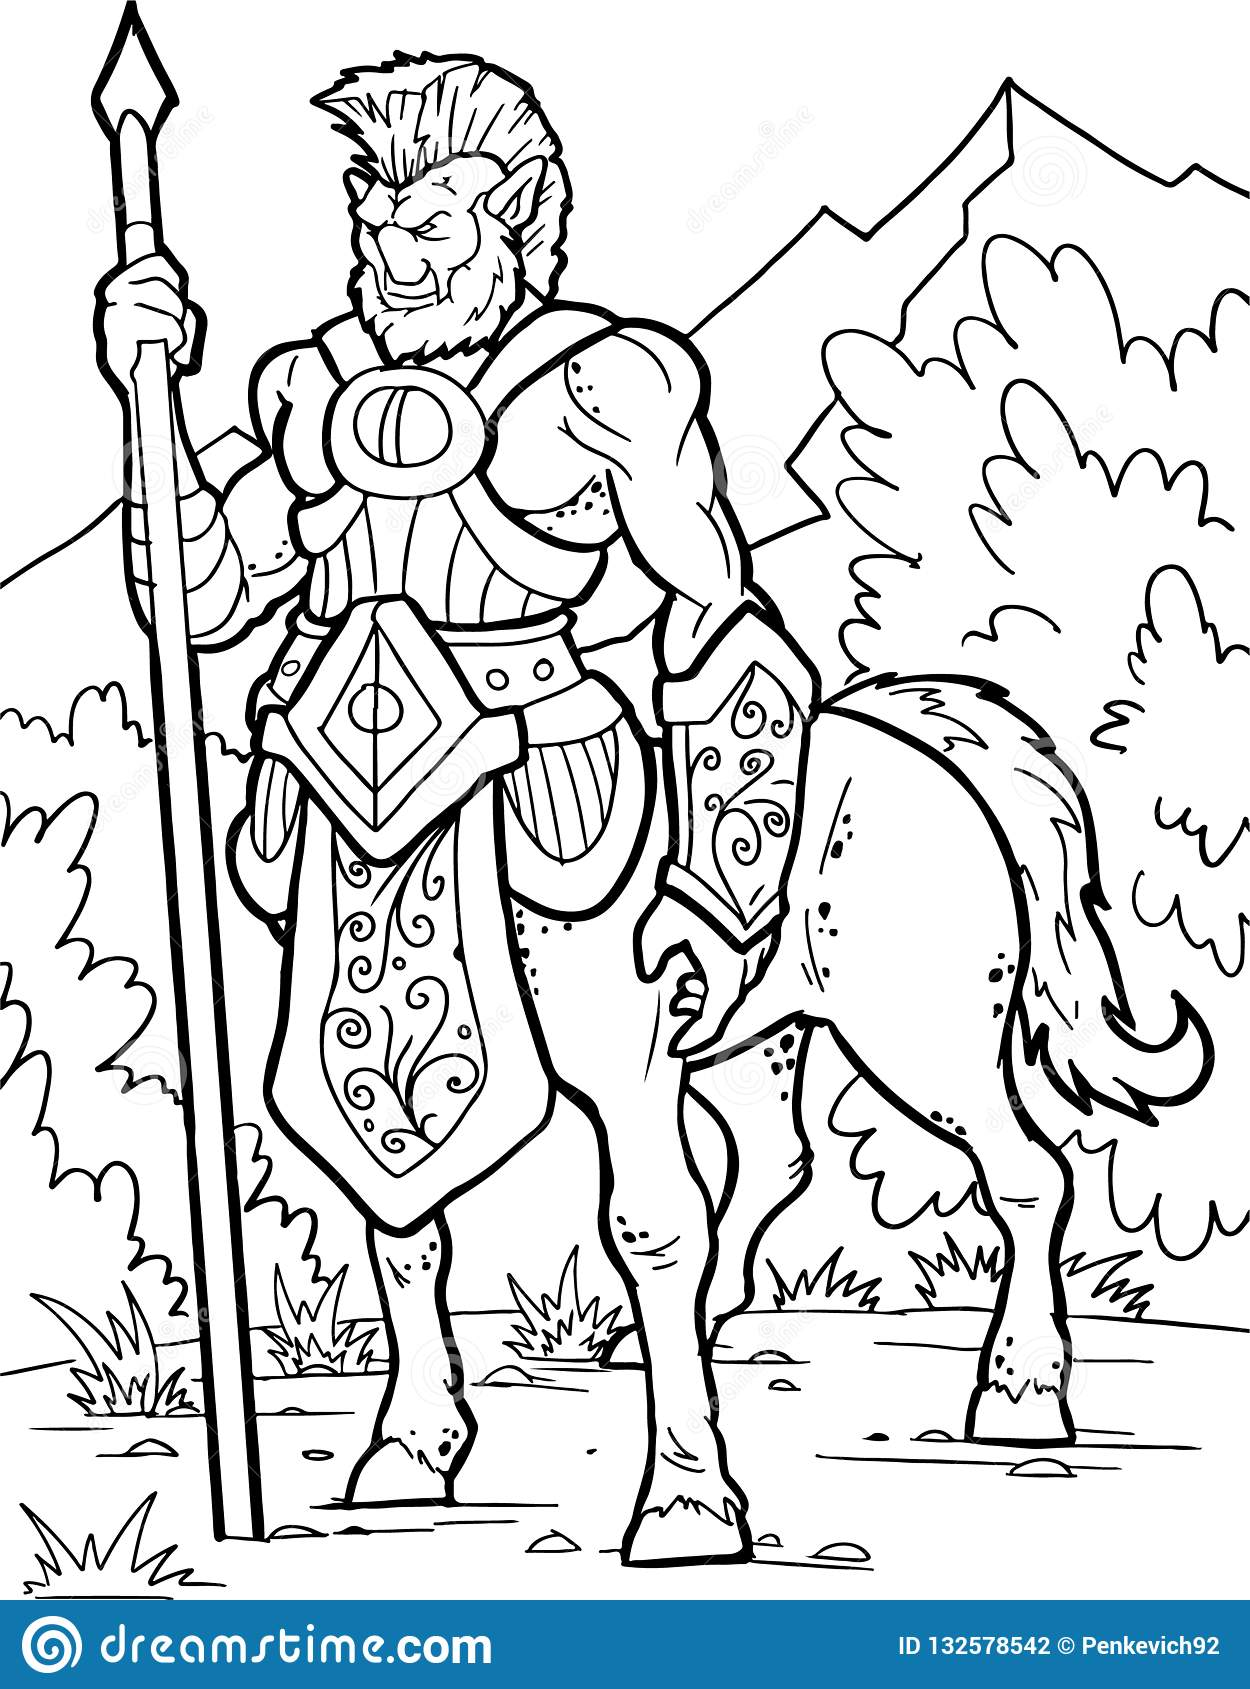 Centaur Human Warrior With Horse Body Fantasy Magic Creatures Collection Hand Drawn Illustration Engraved Line Art Drawing Stock Vector Illustration Of Antique Gothic 132578542